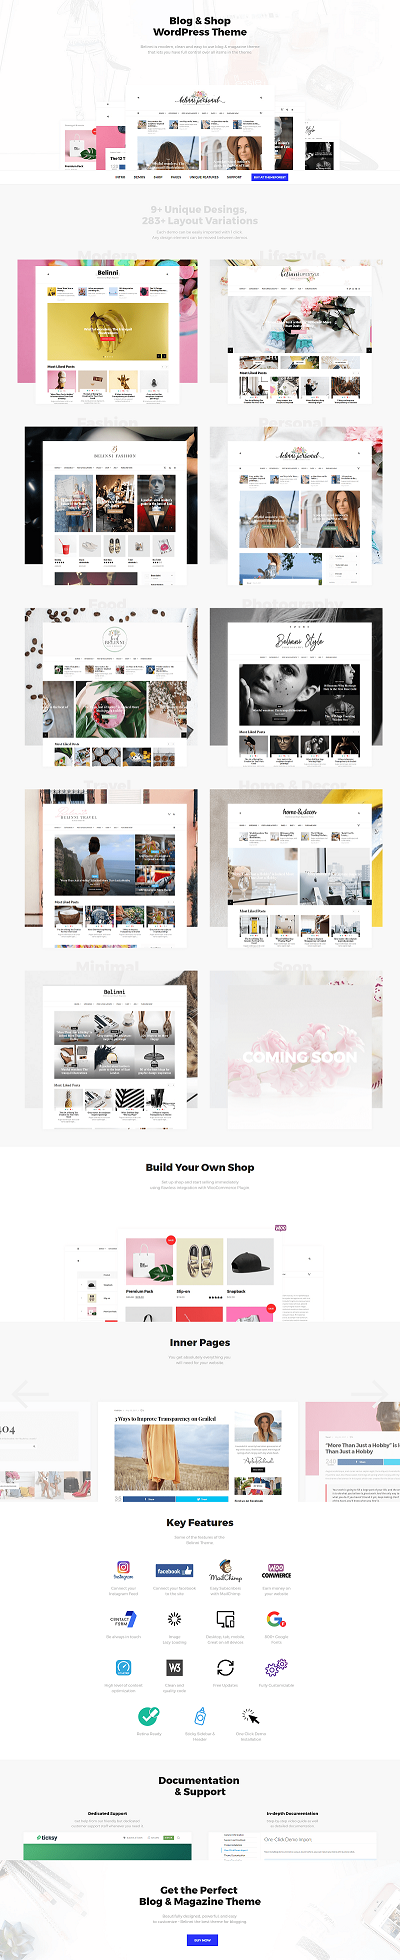 Belinni – Multi Concept Blog Magazine WordPress Theme